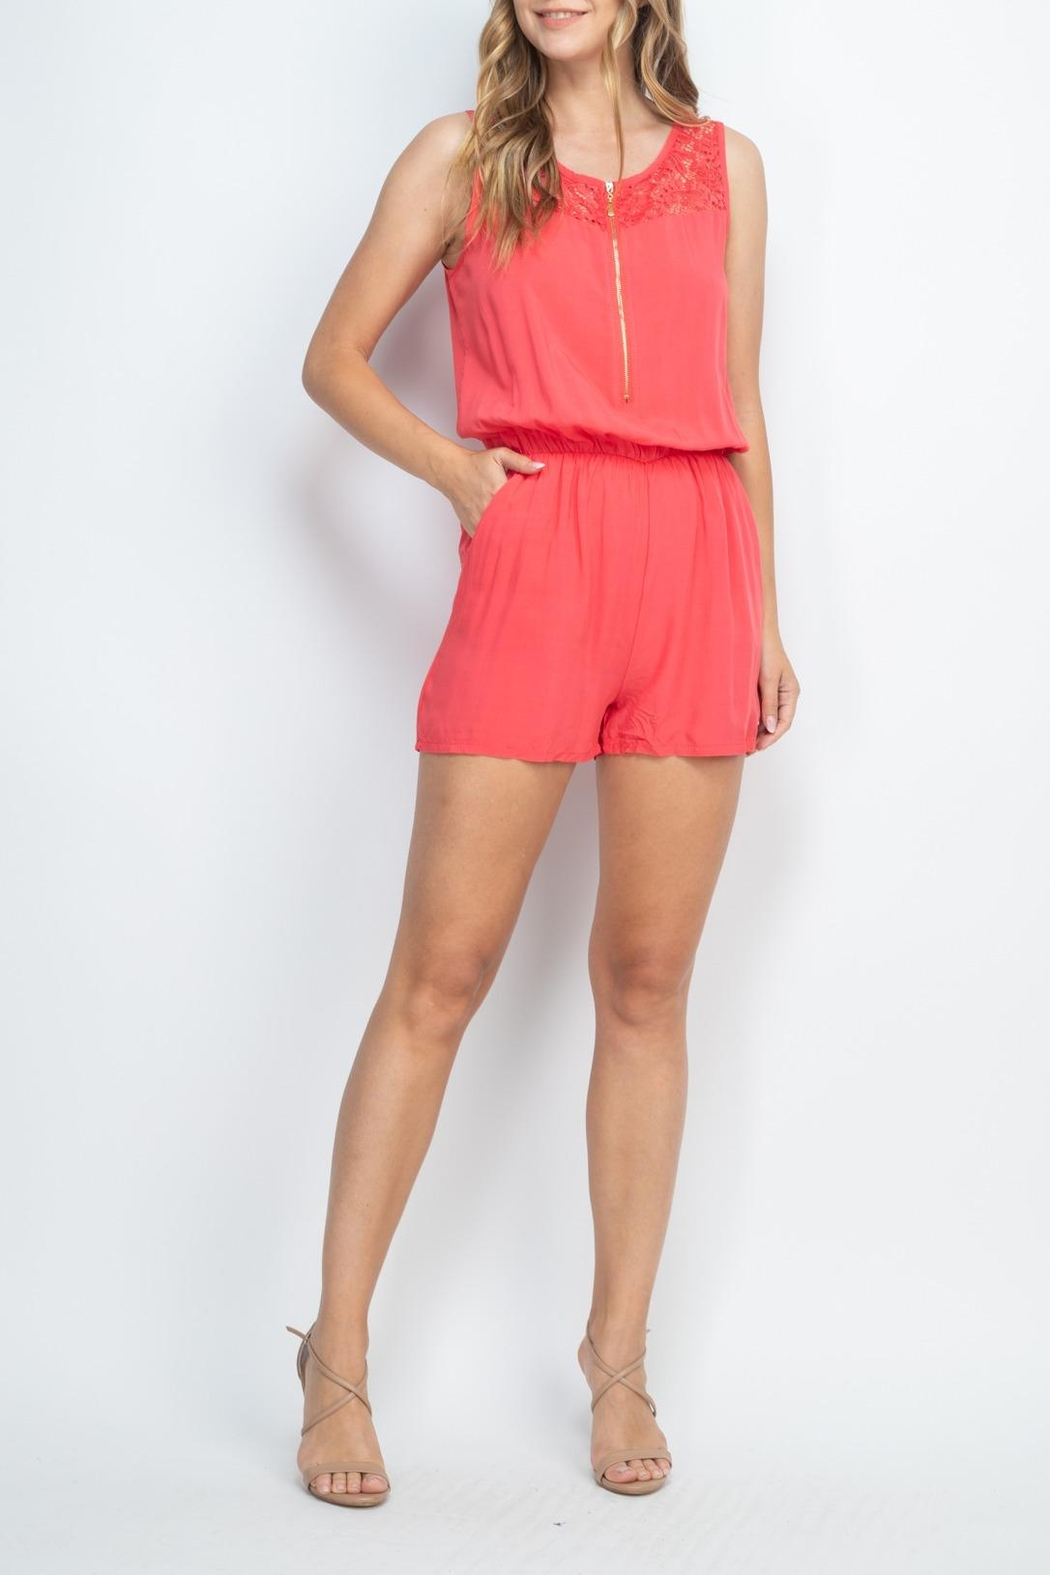 Riah Fashion Coral Romper - Side Cropped Image